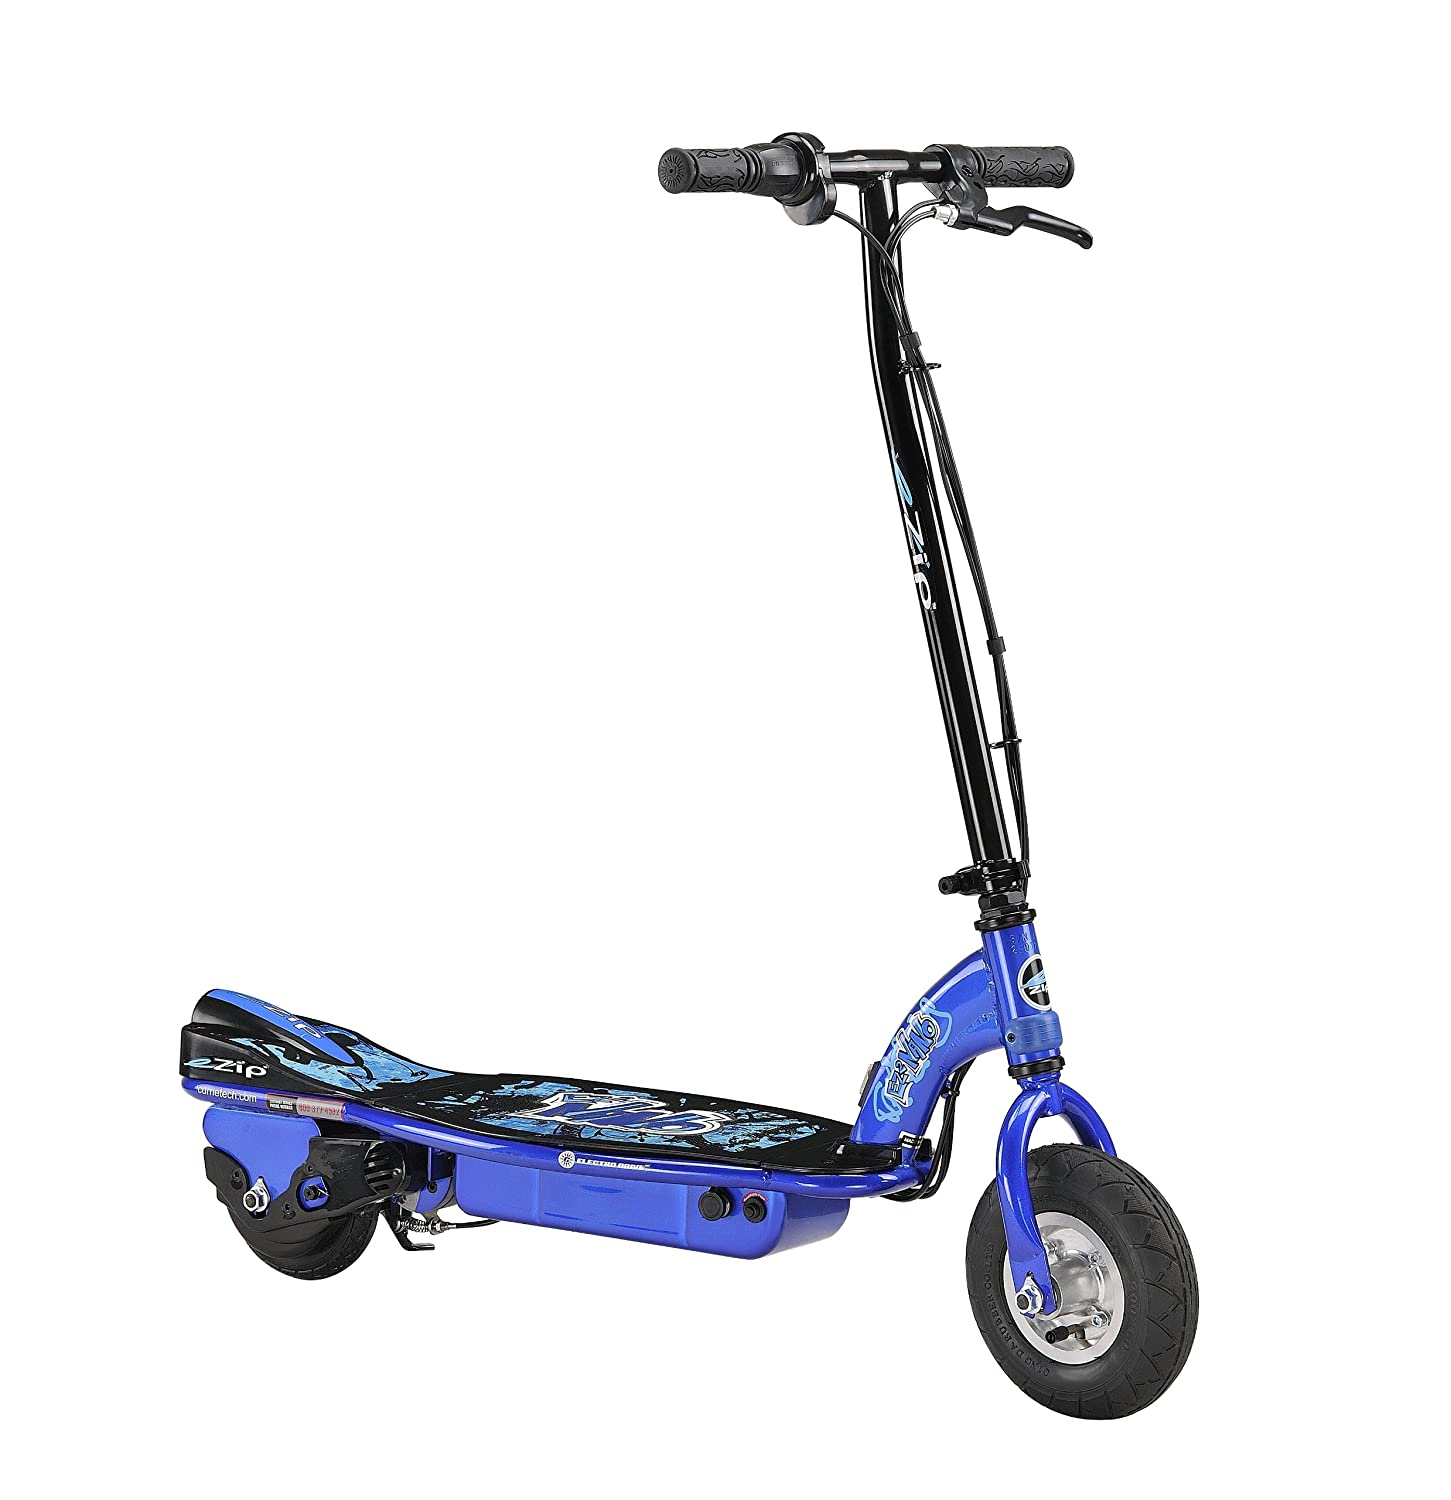 new electric tricycle scooter kids 150 watt rechargeable battery 10 mph trike ebay. Black Bedroom Furniture Sets. Home Design Ideas